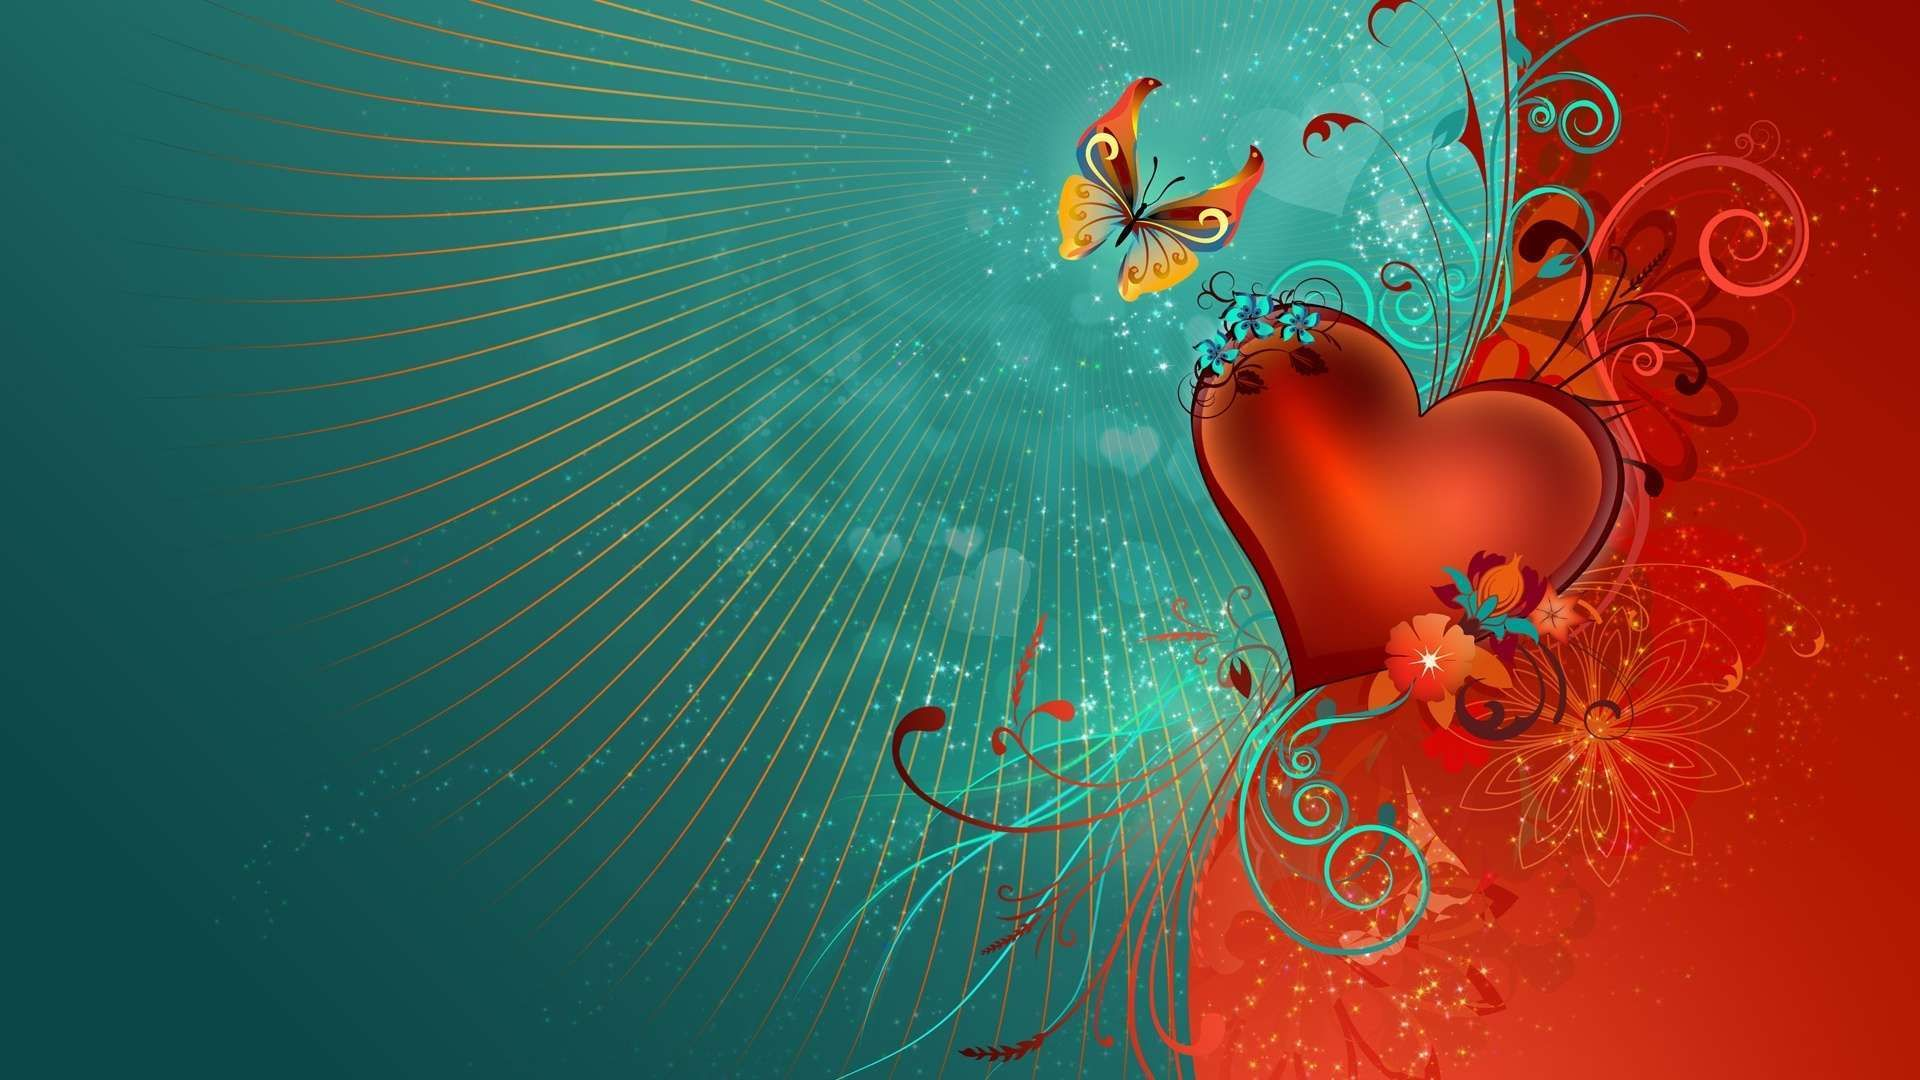 love heart hdtv wallpapers - http://hdwallpapersf/love-heart